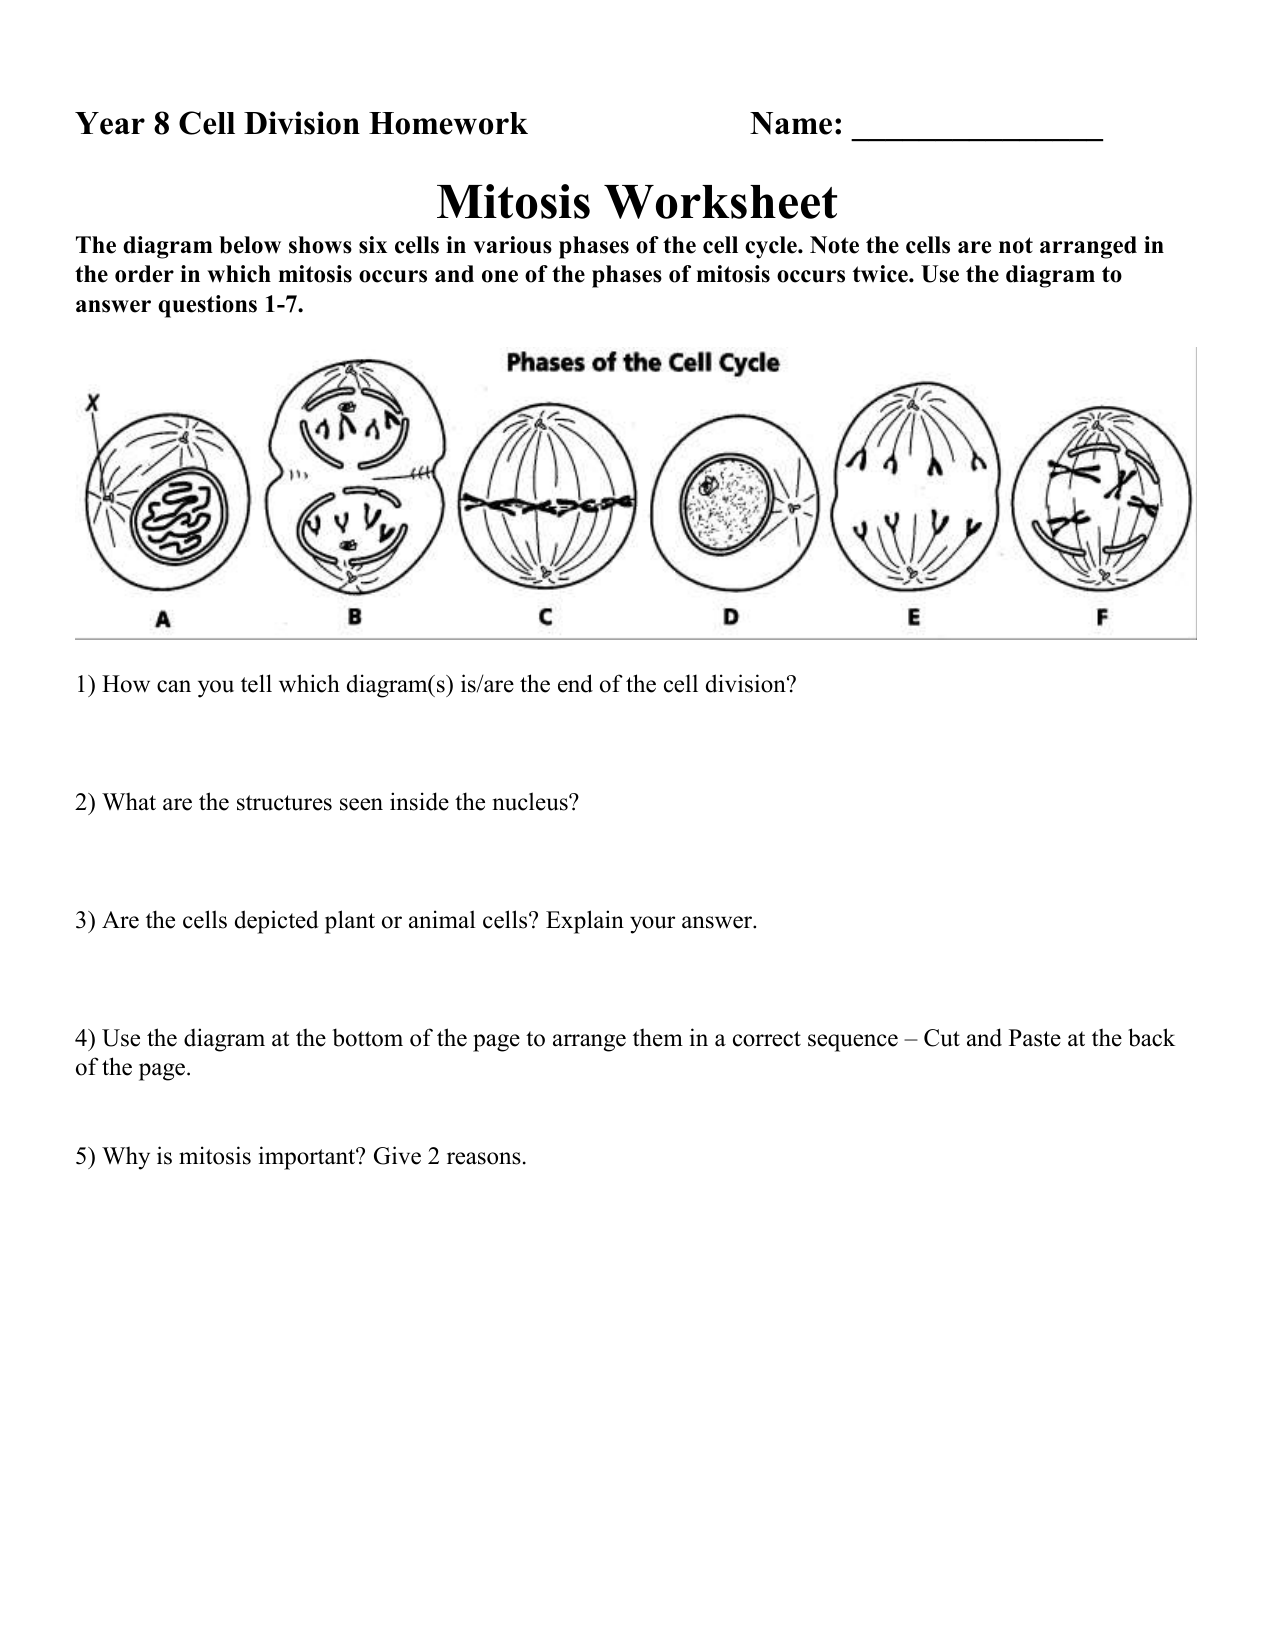 The Cell Cycle Worksheet Answers